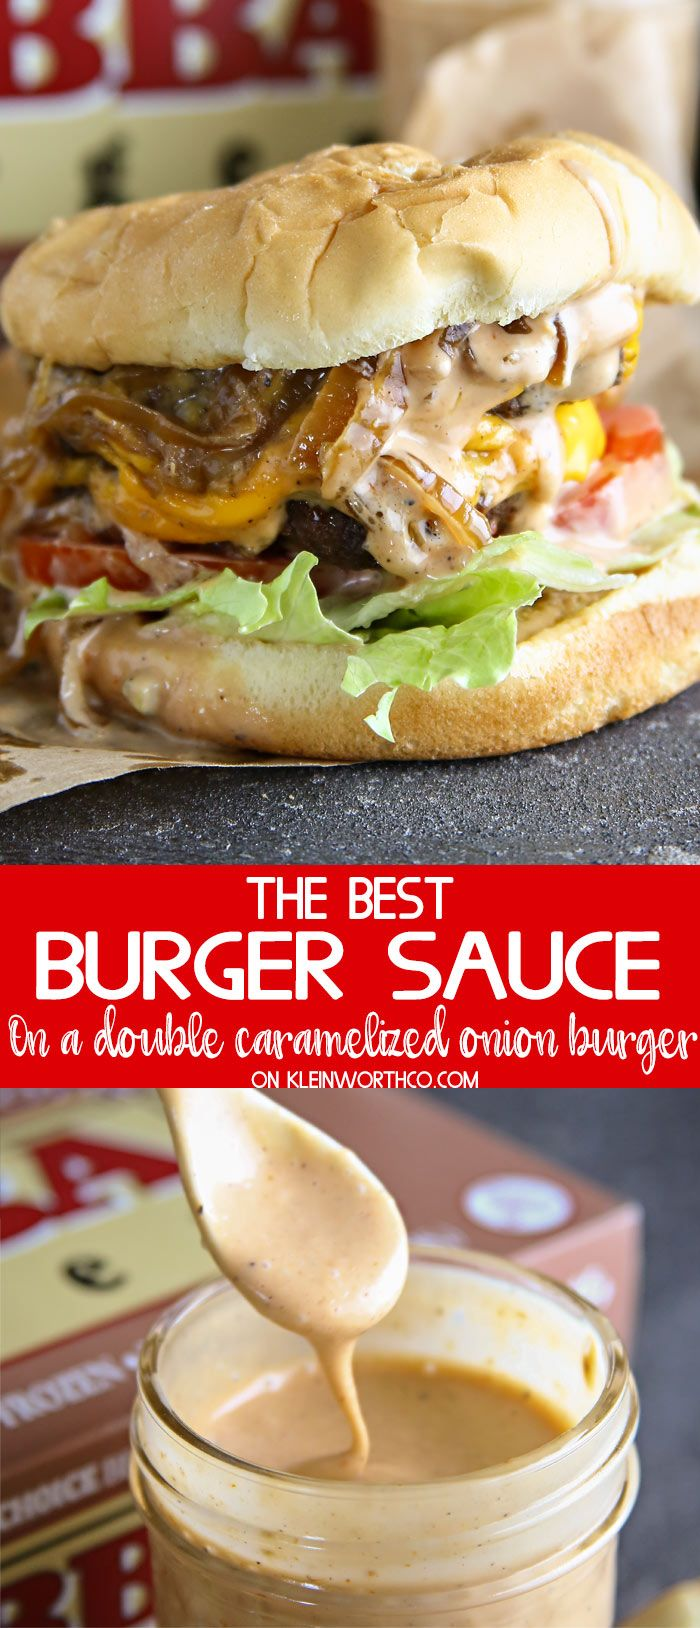 Best Burger Sauce on a Double Caramelized Onion Burger is the best thing you'll ever eat. Delicious over the top juicy burger loaded with all the good stuff. #BuildABetterBurger #ad #BubbaBurger @Bubbaburger